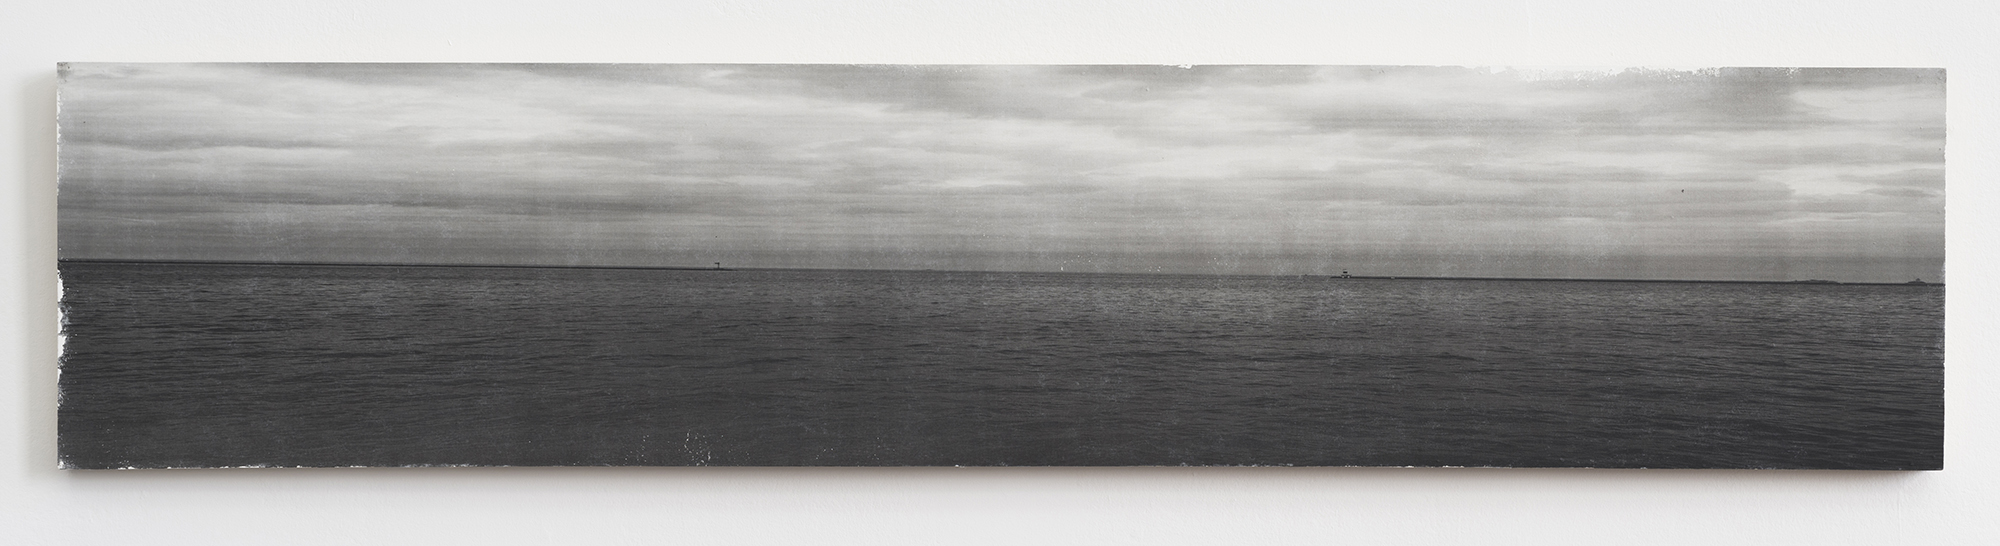 Ian Weaver, Shoreline IV, 2014, photographic transfer with sanding and wax on panel, 18 x 86 inches